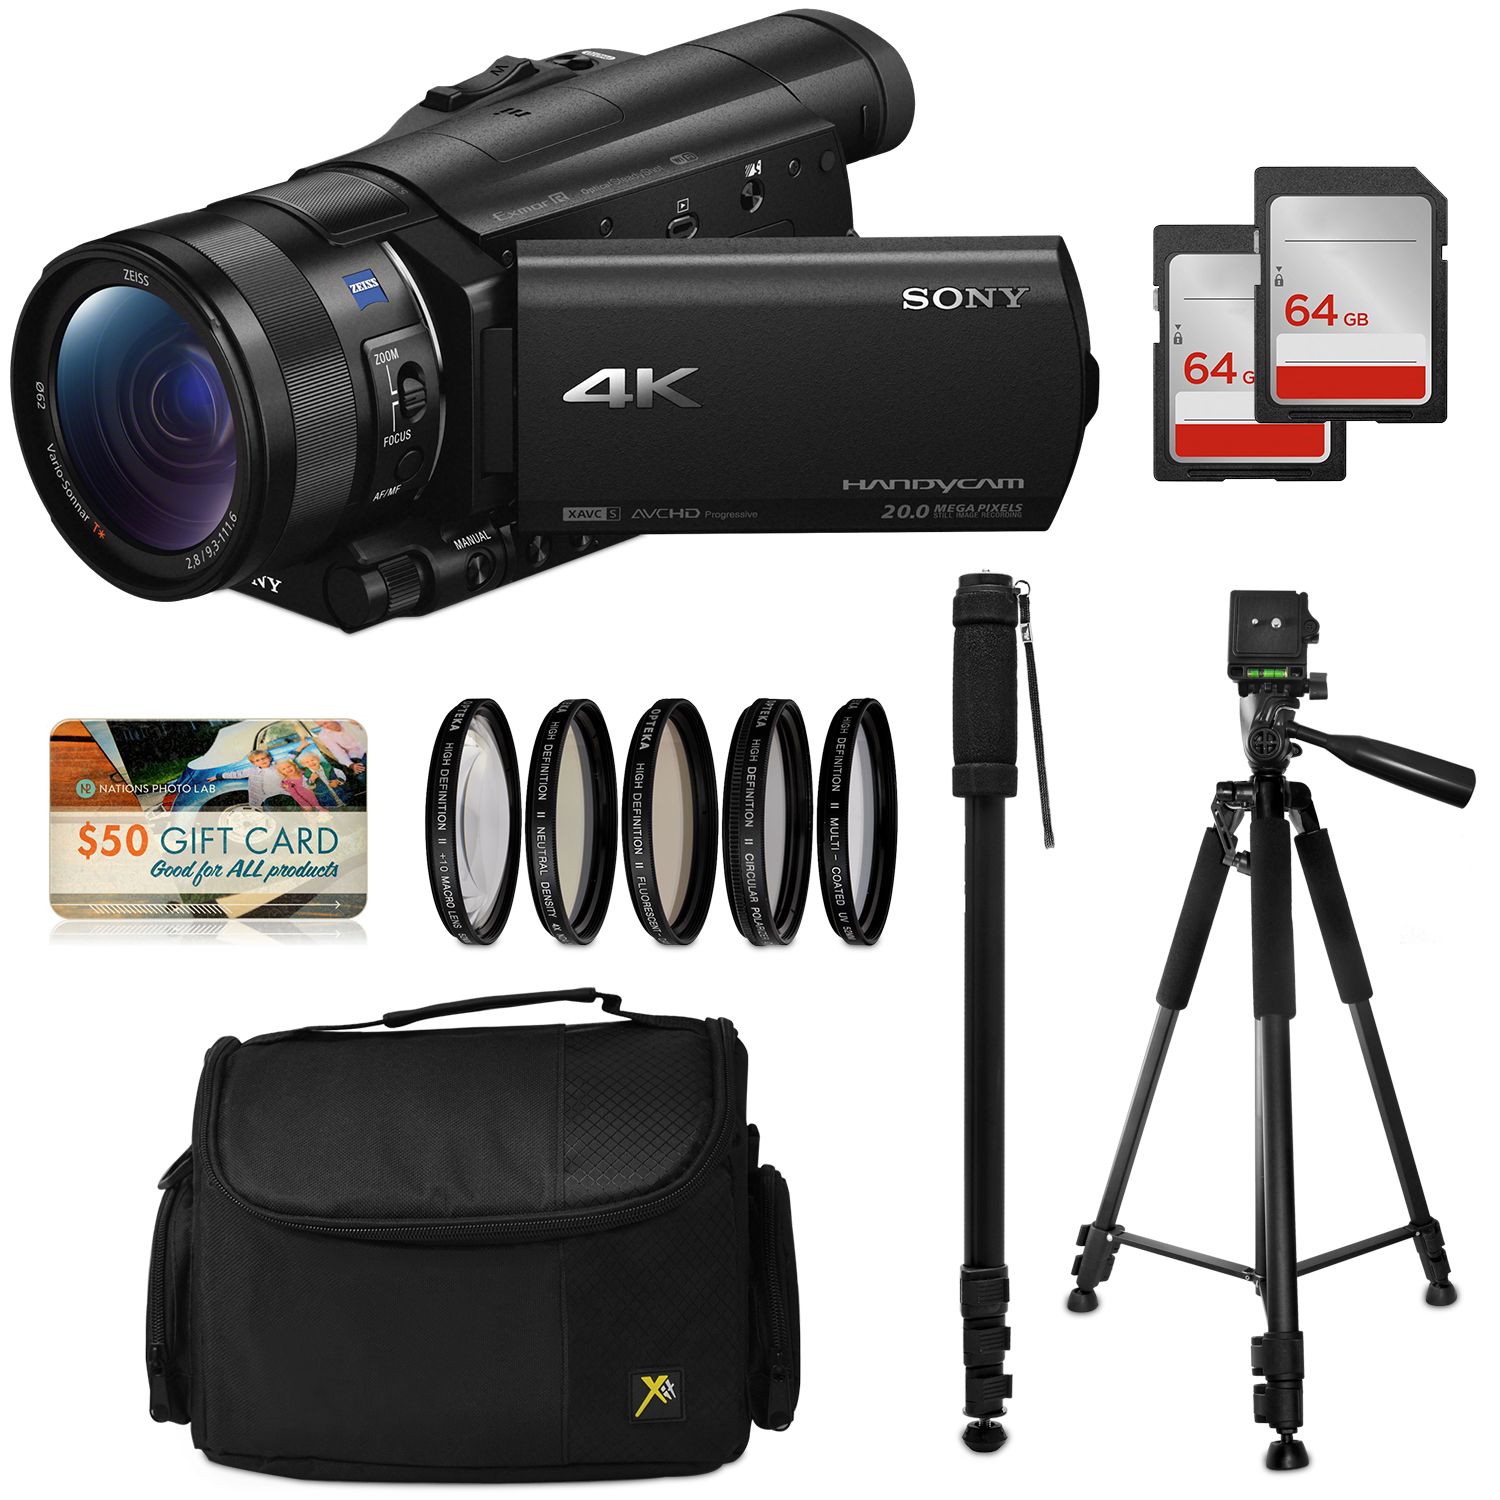 Sony FDR-AX100 4K Ultra HD Camcorder Video Camera Kit, 128GB Memory + Tripod + Monopod + Bag + UV CPL FL ND4... by 47th Street Photo